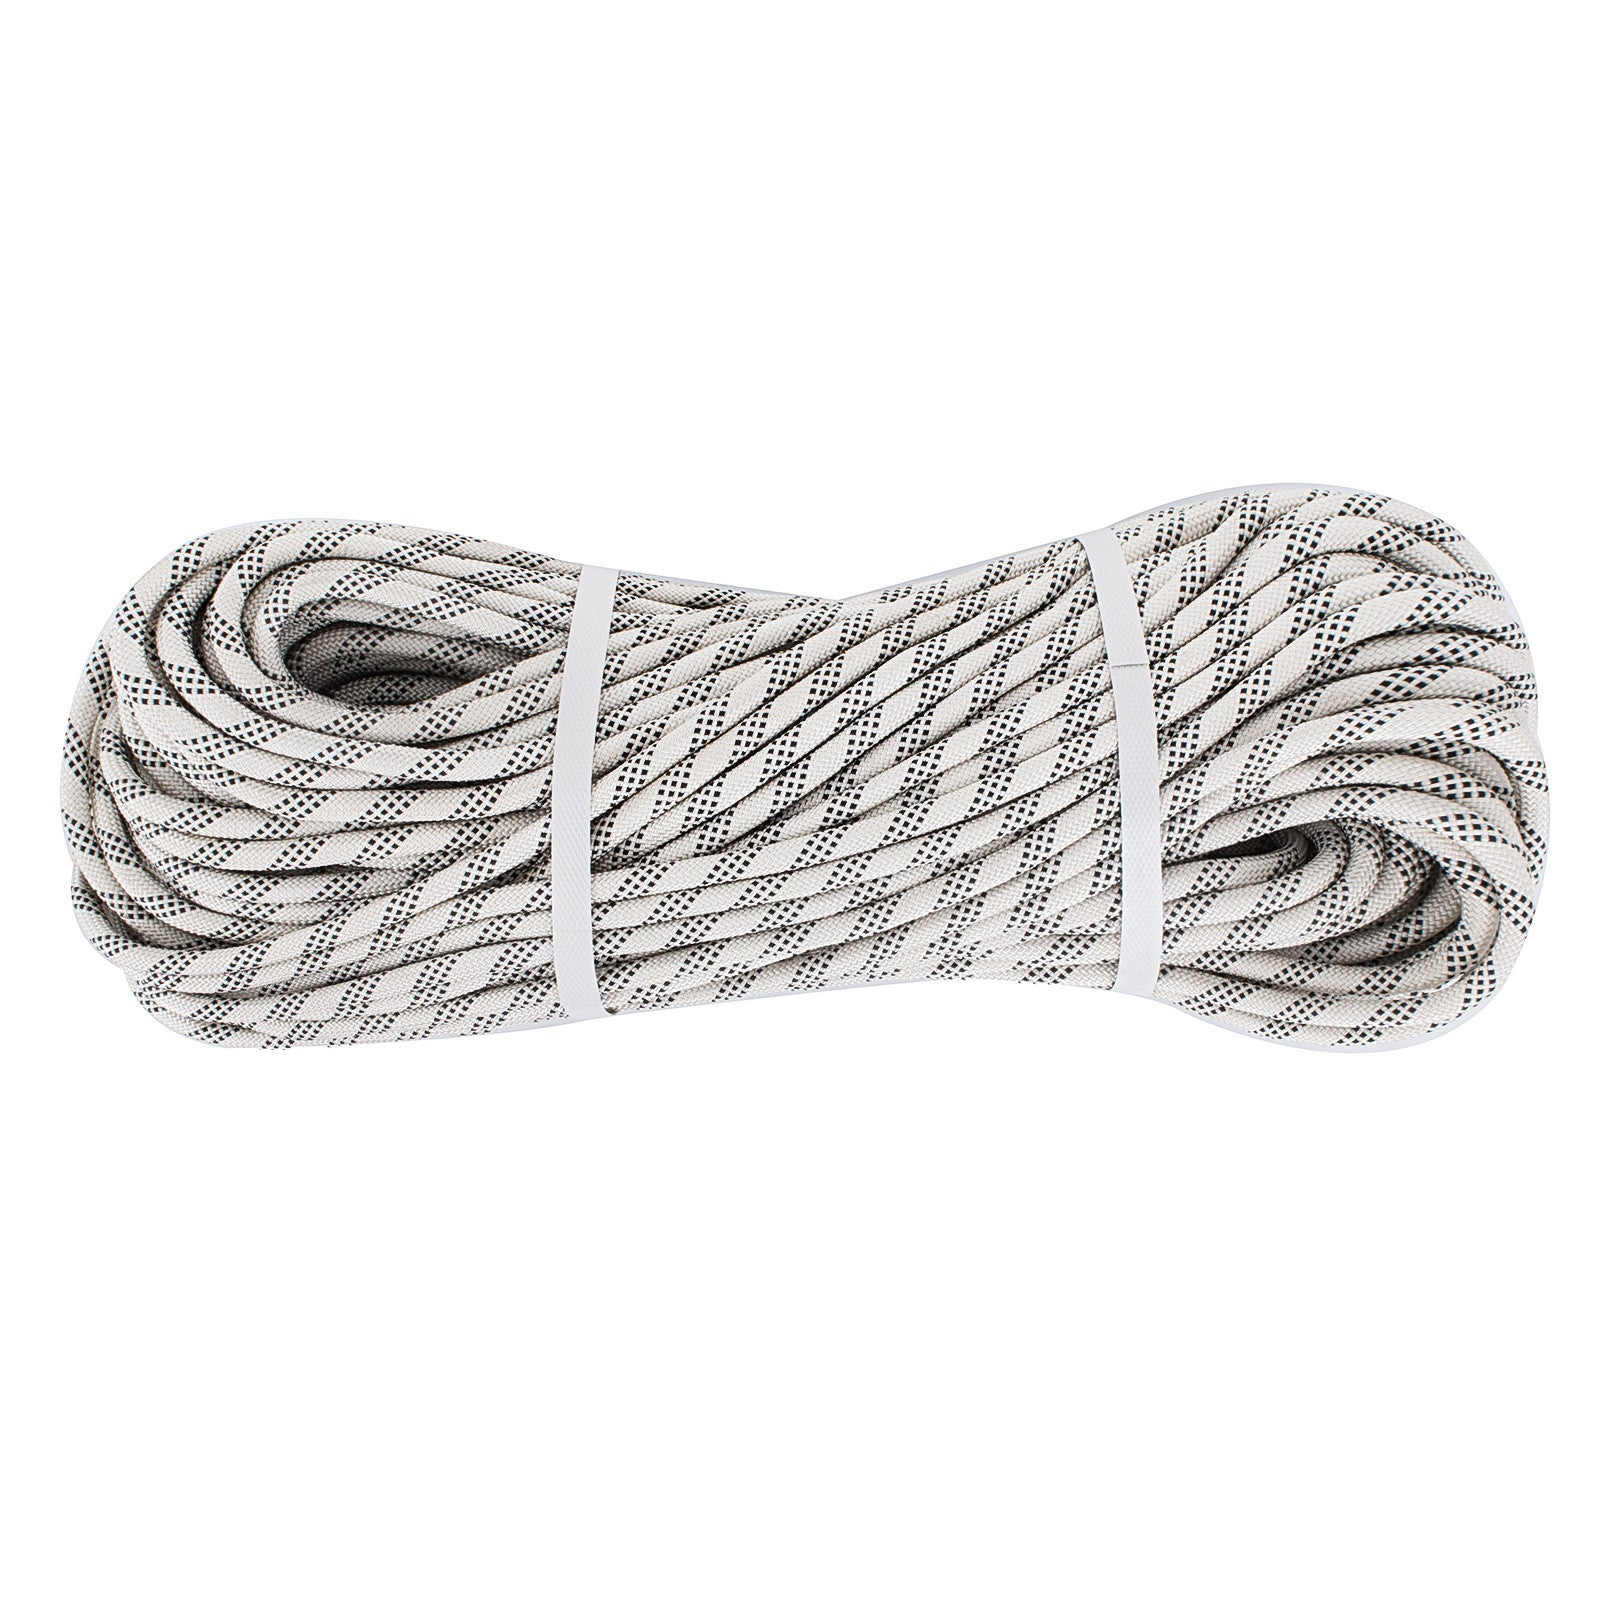 25m*10.5mm Dynamic Climbing Rope White With Black Rescue Rock Climbing Good